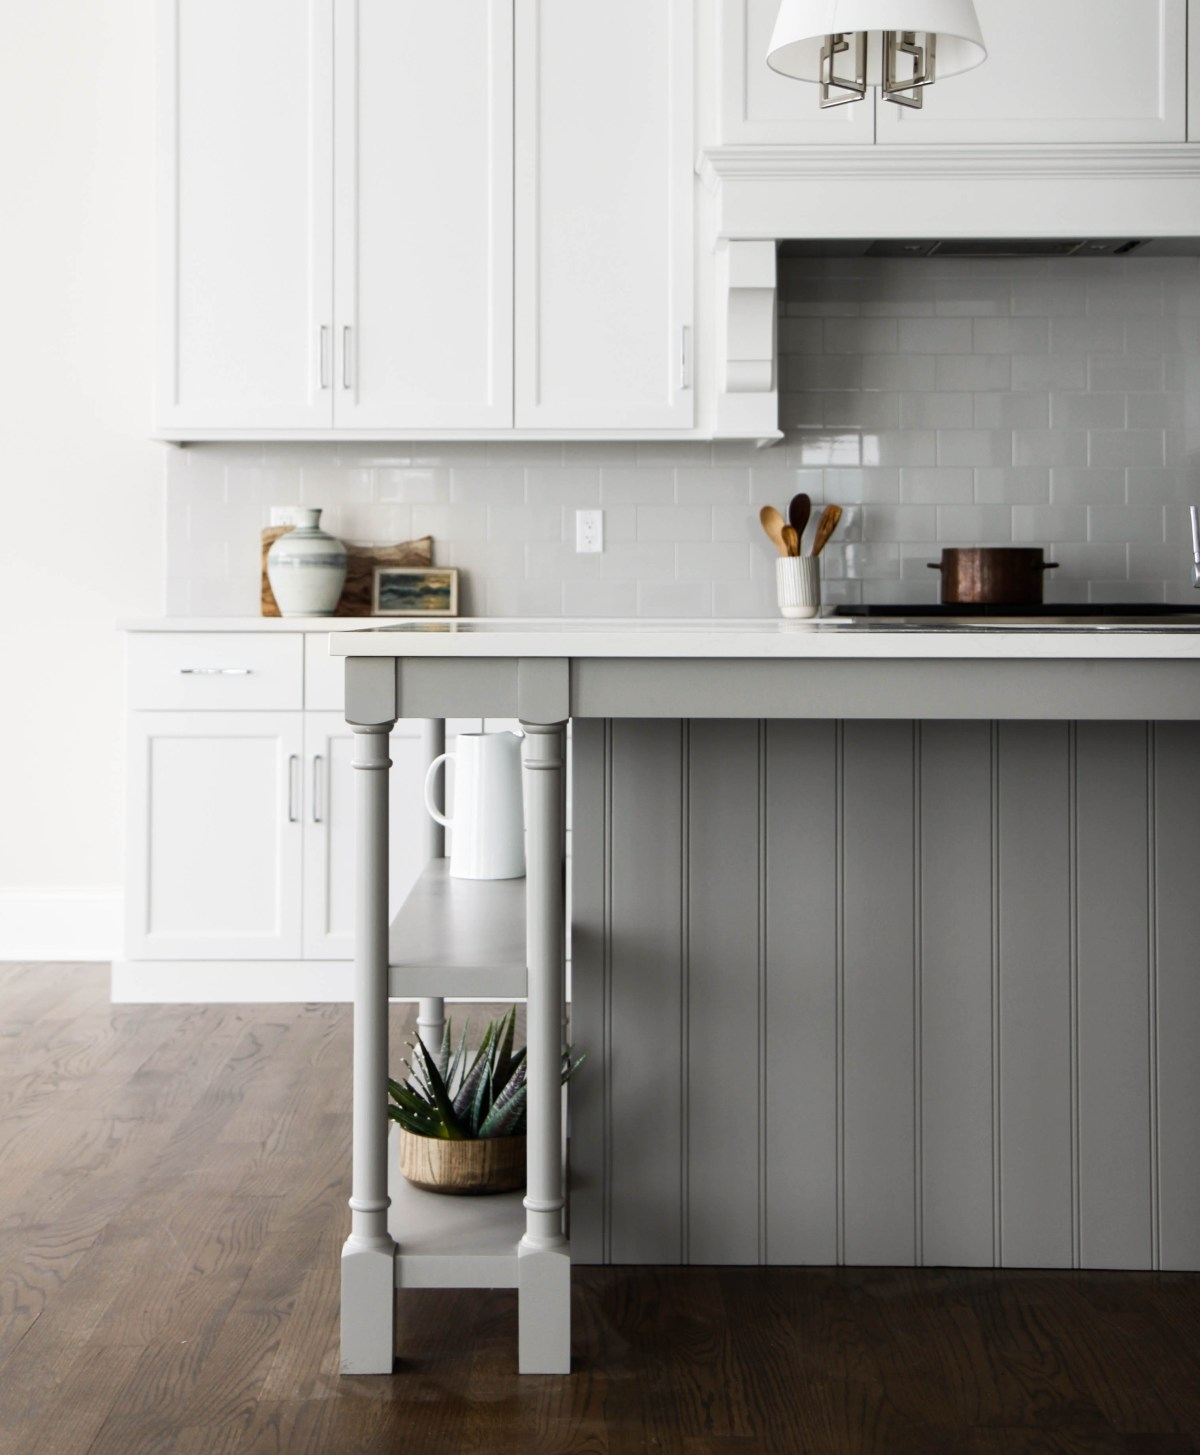 Inset vs overlay kitchen cabinetry